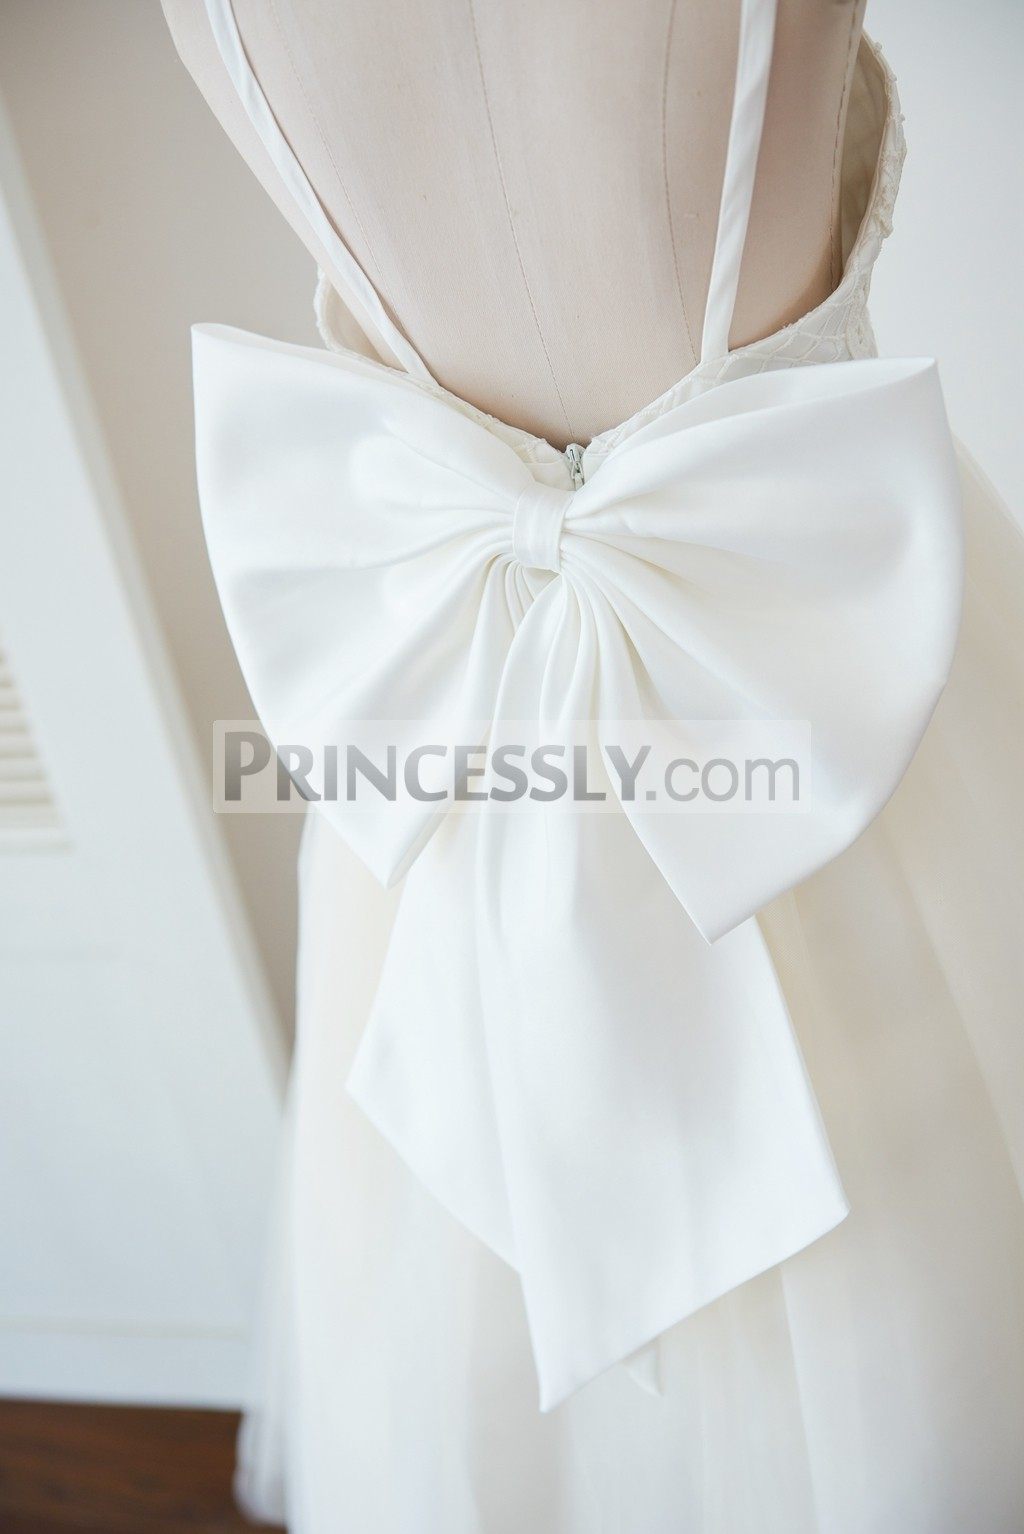 Backless with a big bow on hidden zipper closure